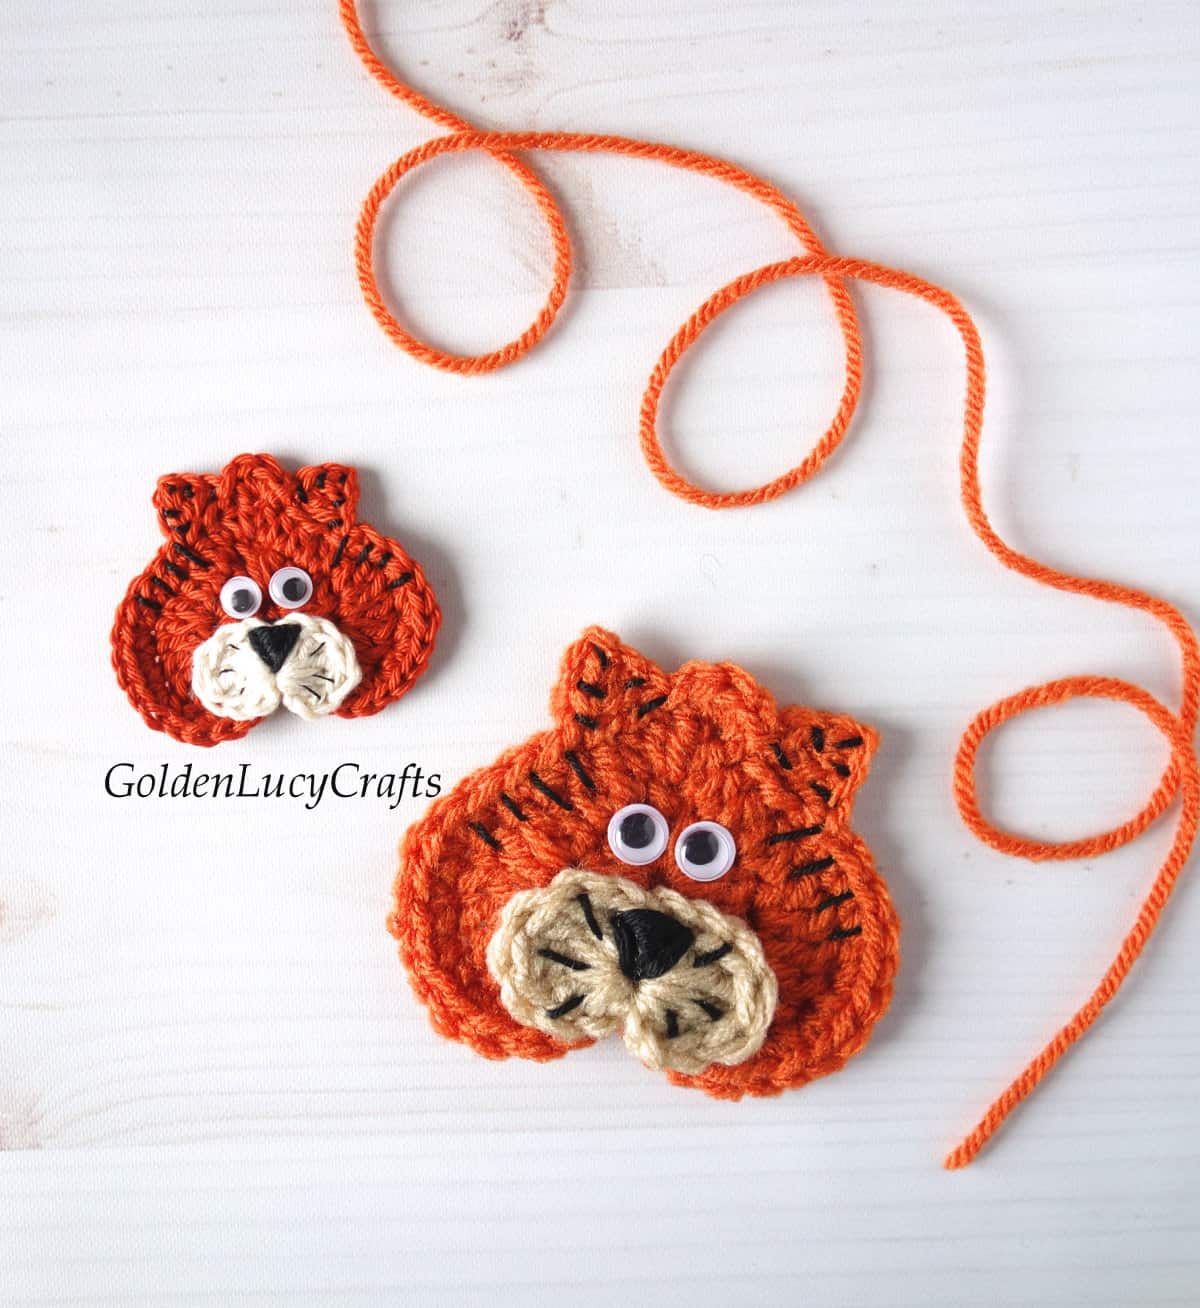 Two crocheted Tiger applique made in different sizes.